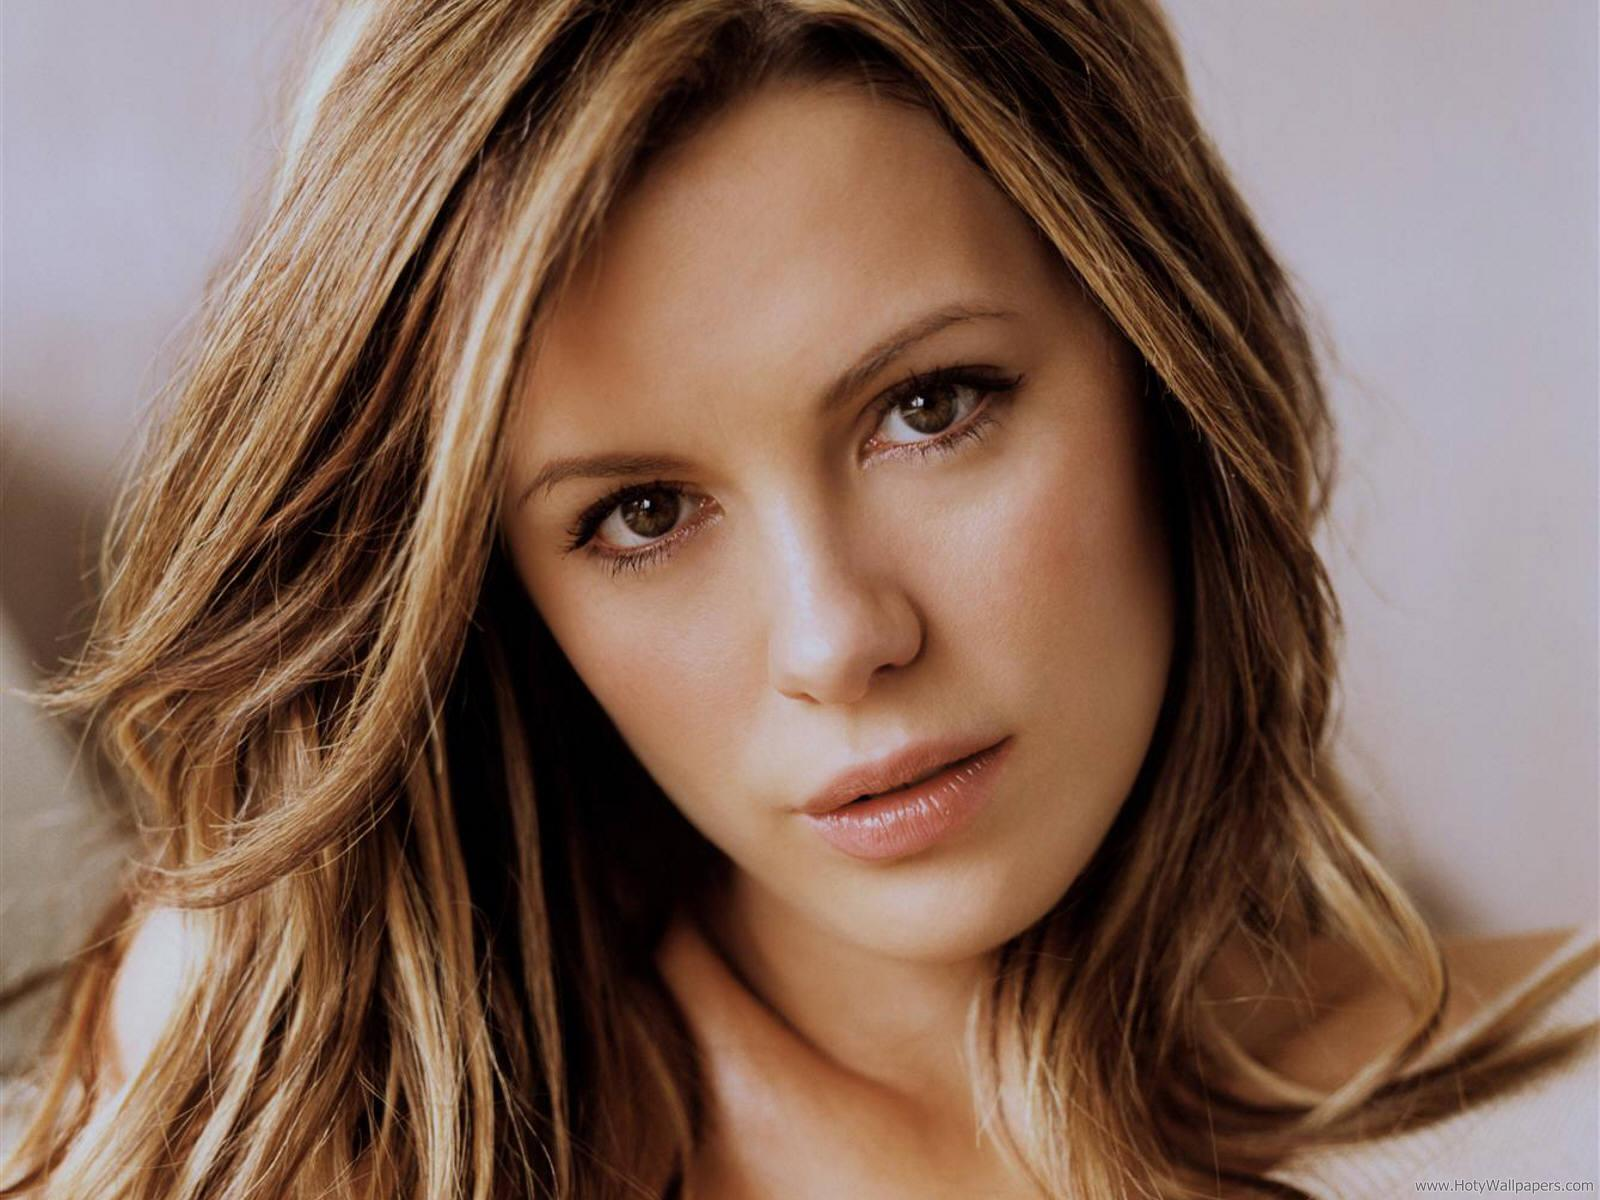 Kate Beckinsale HQ Wallpapers ~ Fun Hungama Kate Beckinsale